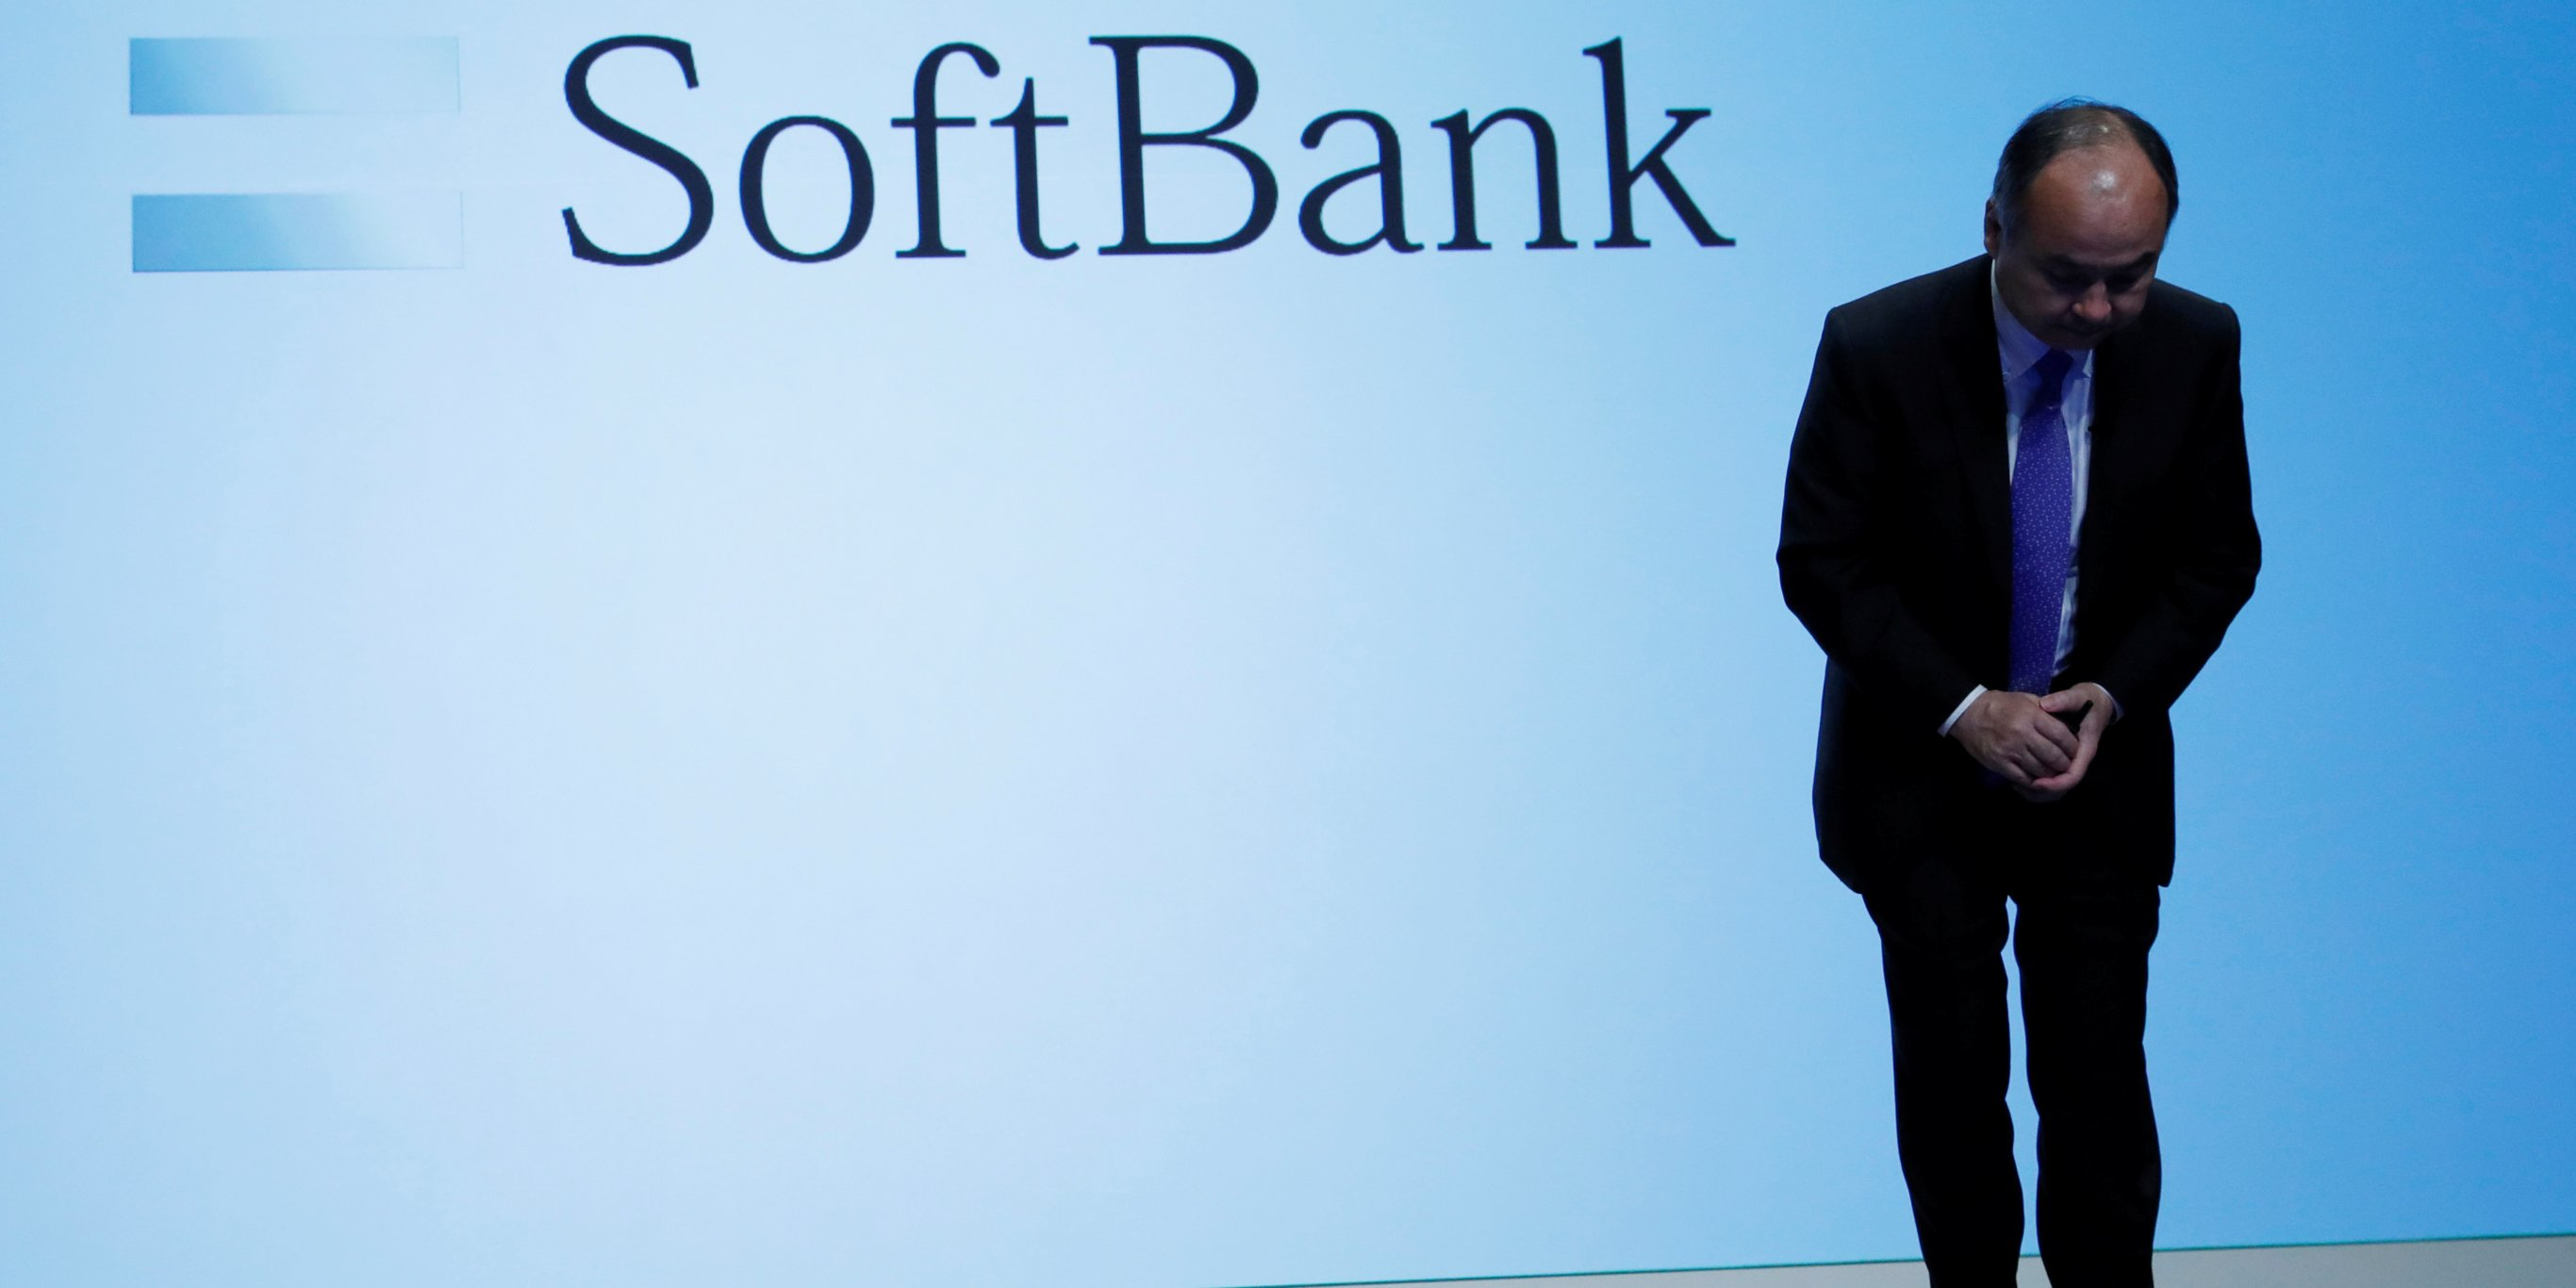 The jolts shaking SoftBank's Silicon Valley empire